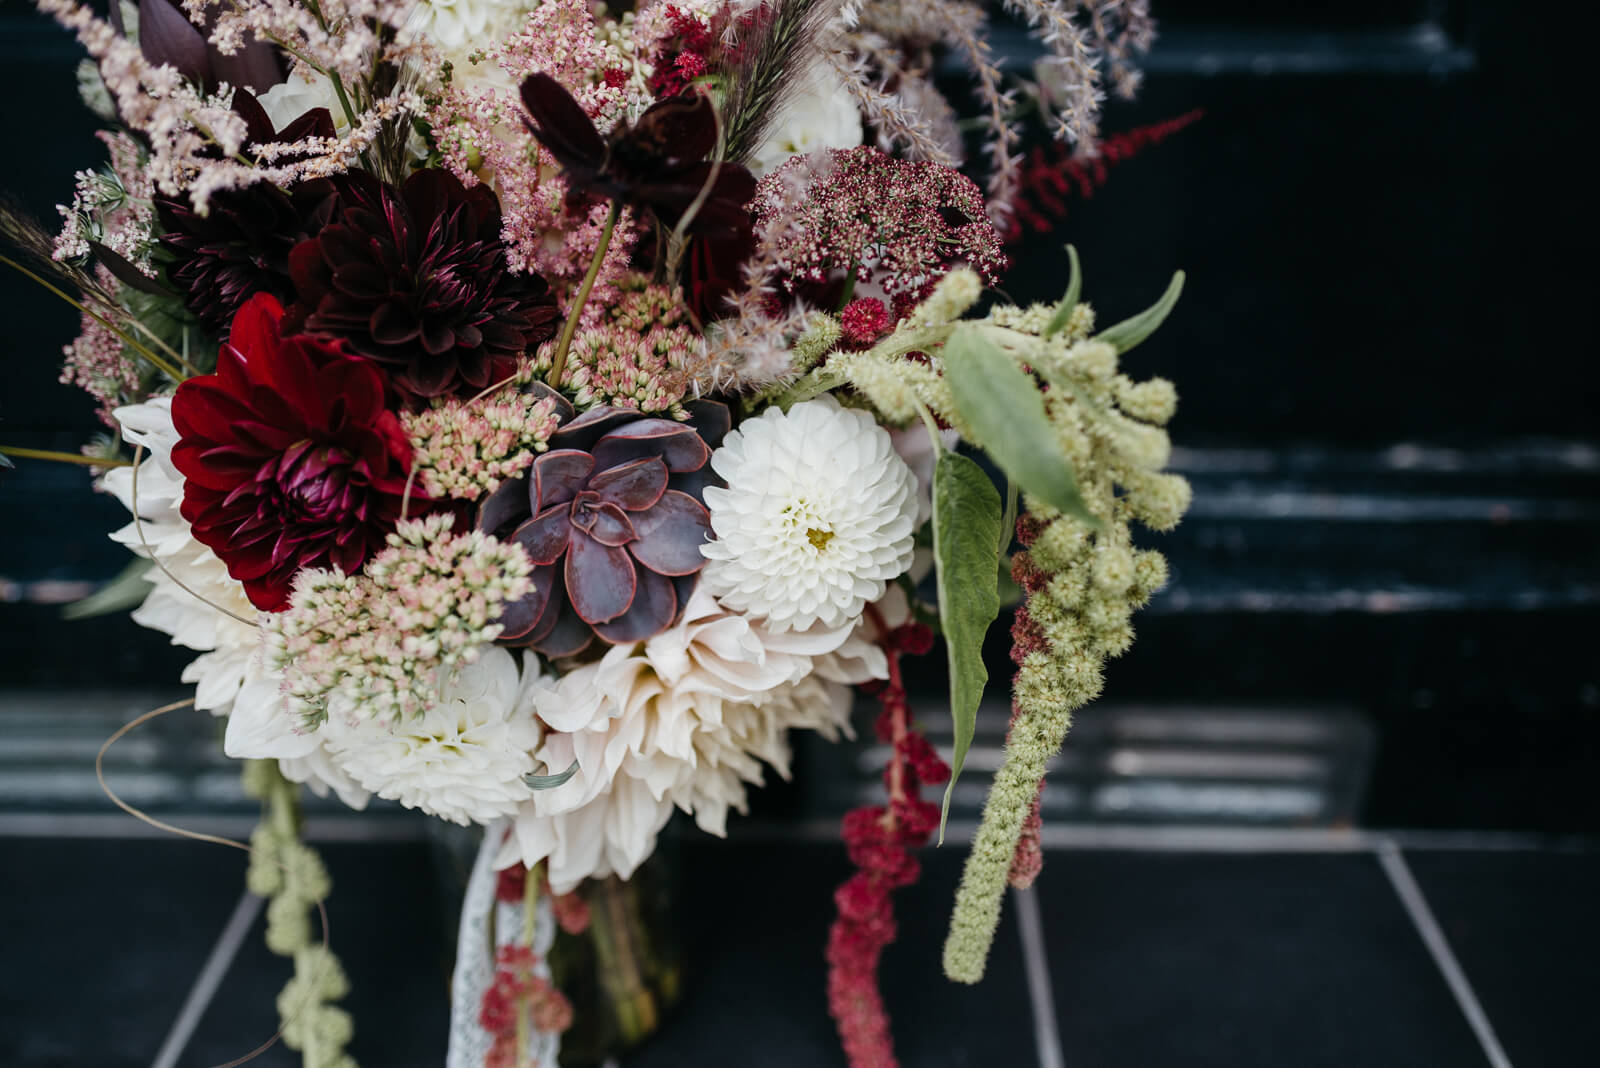 dark, sumptuous bouquet of dark wine and white dahlias, succulents, chocolate cosmos and astilbe